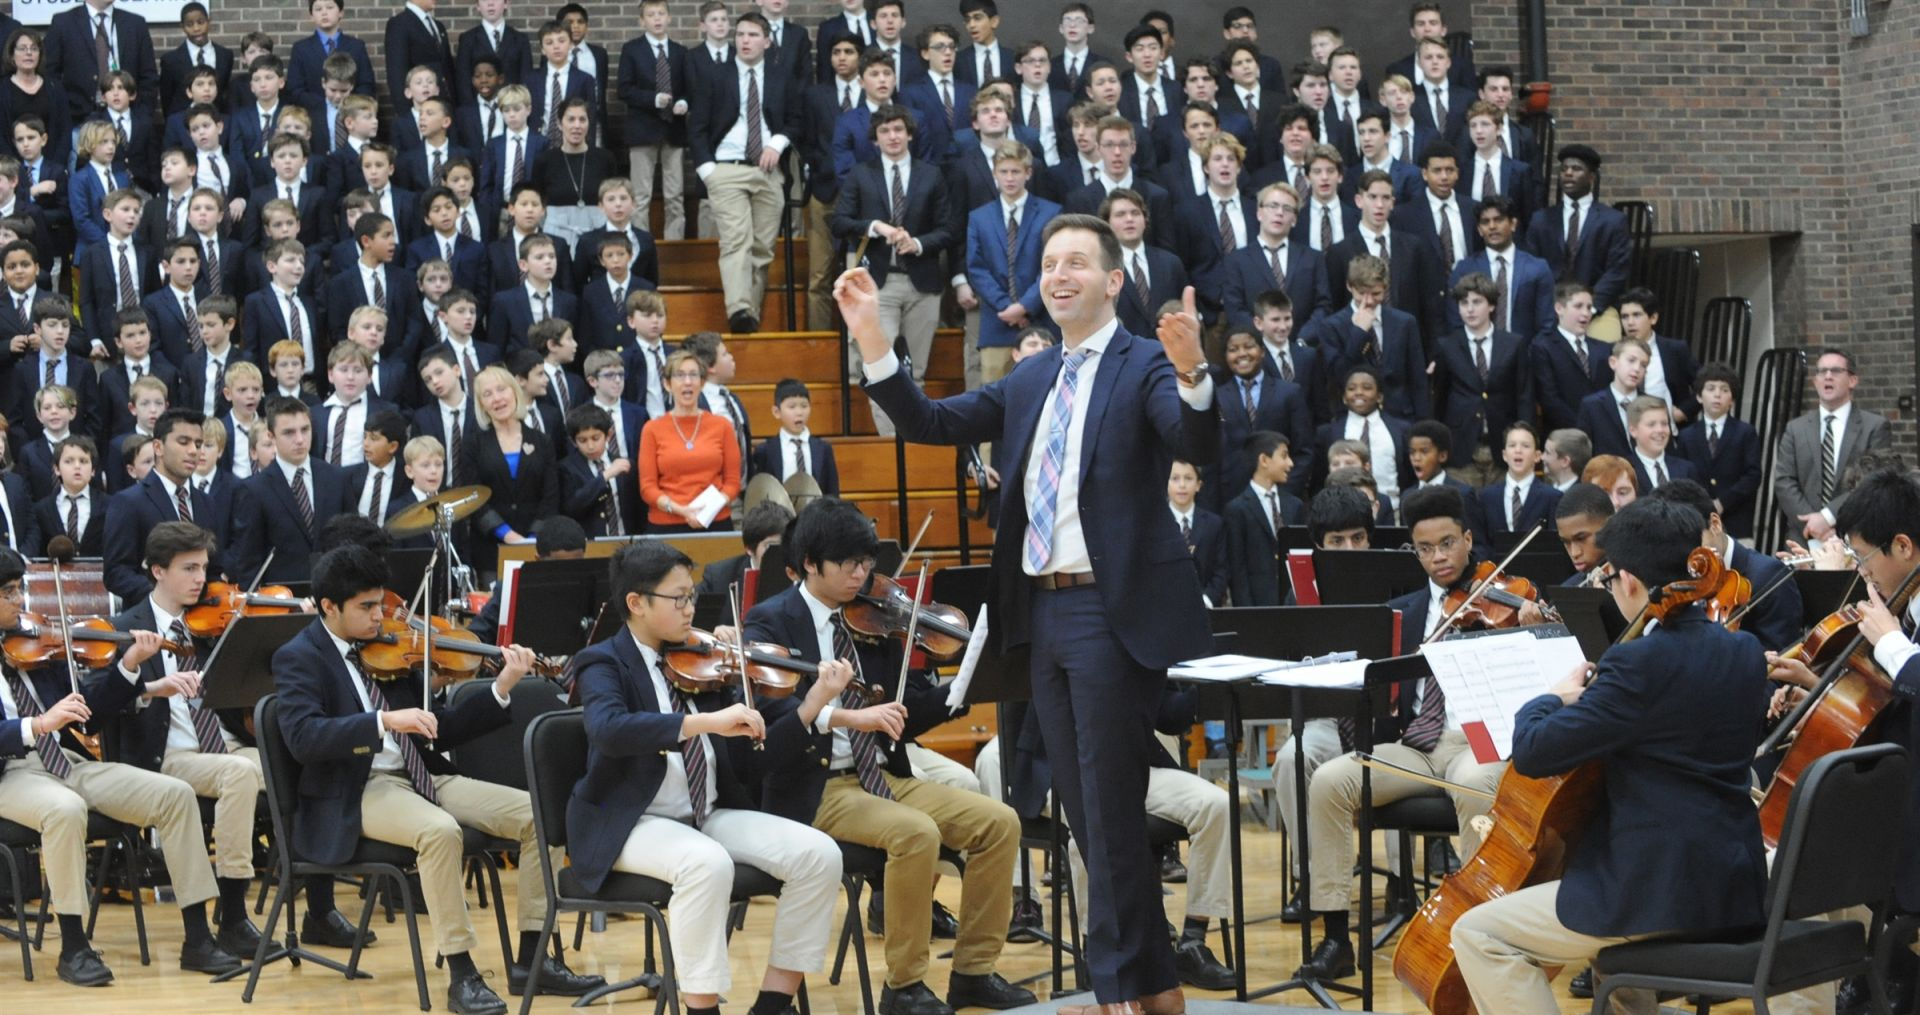 Danny Singer conducts The University School Chamber Orchestra.